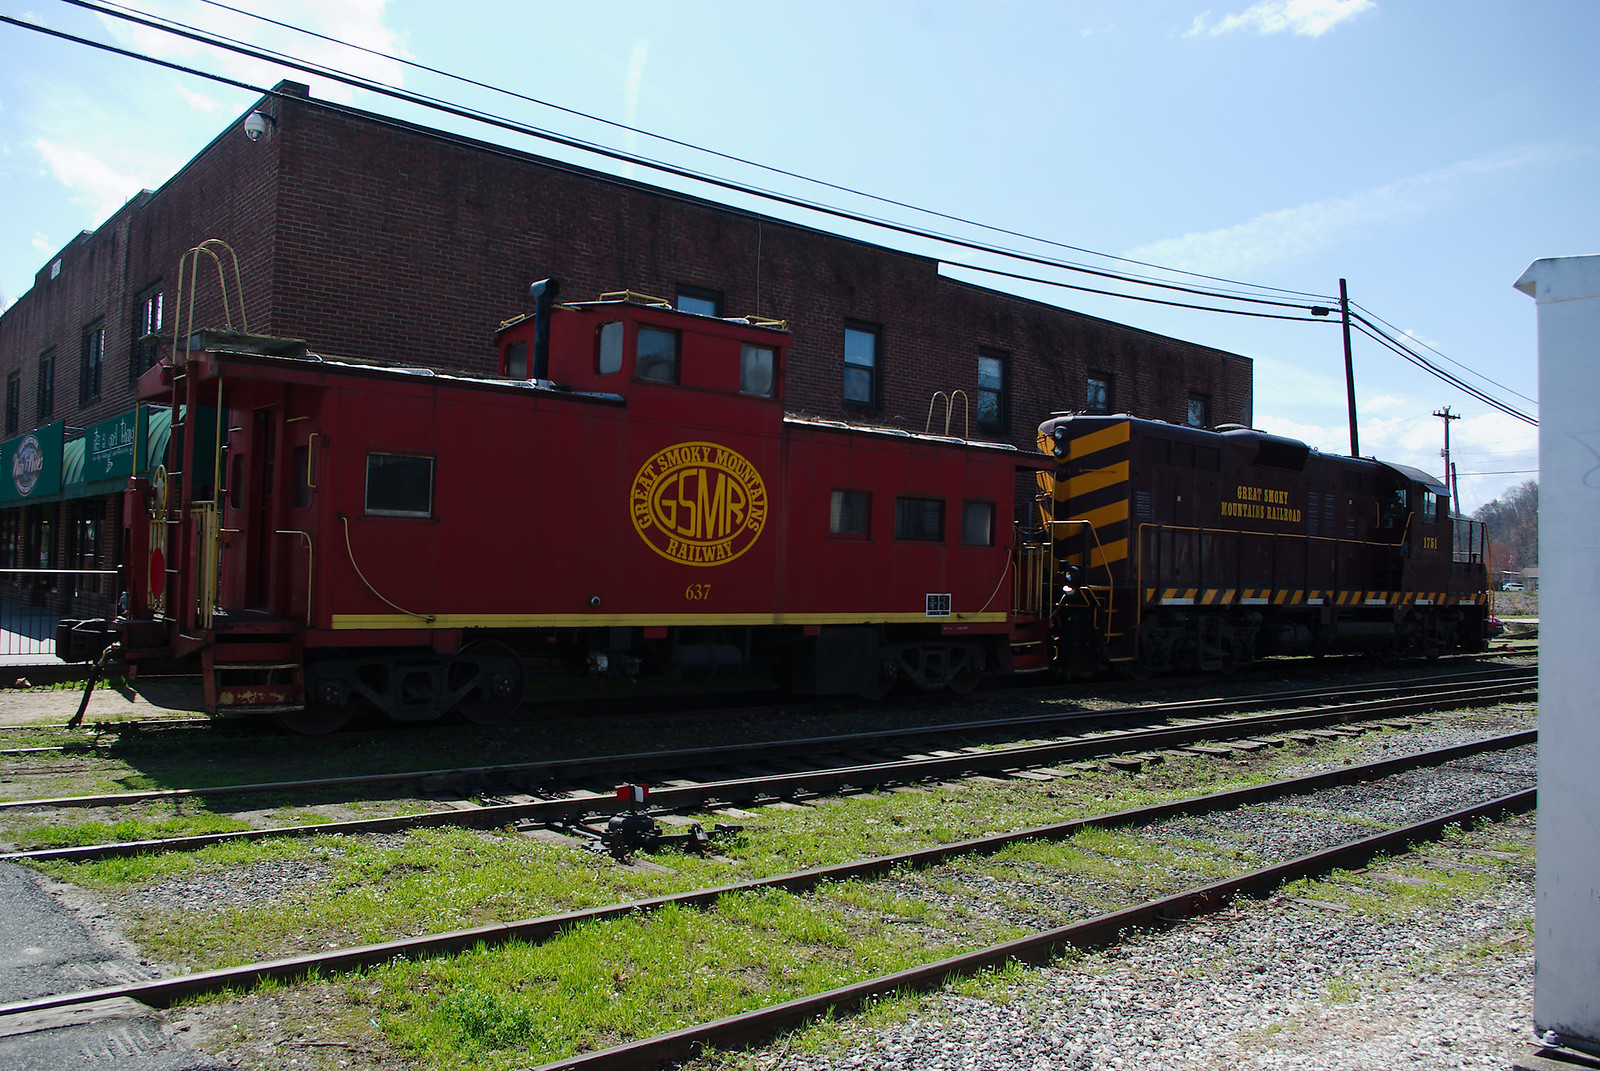 GSMR 1751 Locomotive and 637 Caboose